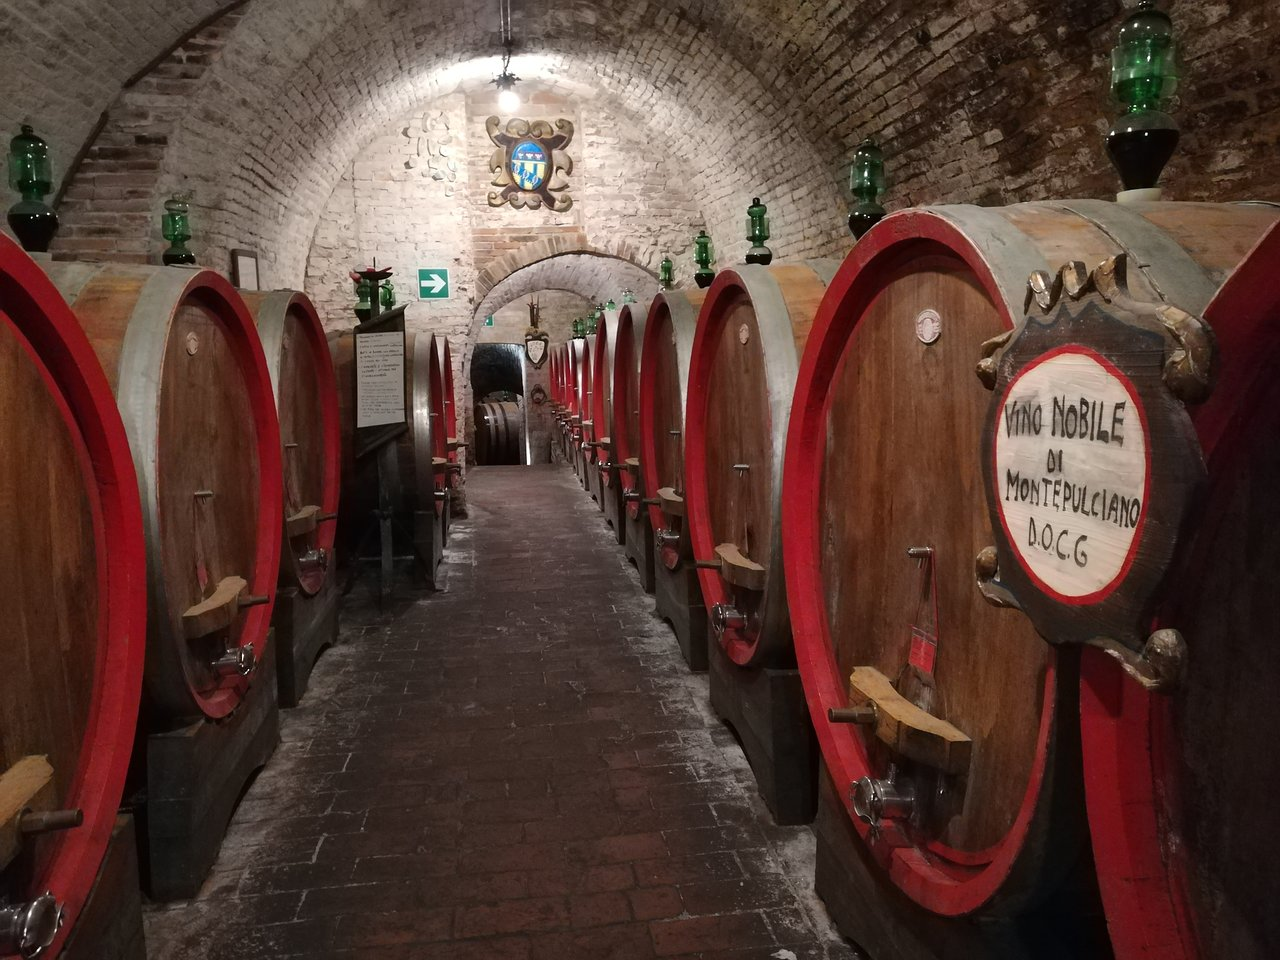 Azienda Agricola Ercolani Montepulciano 2020 All You Need To Know Before You Go With Photos Montepulciano Italy Tripadvisor